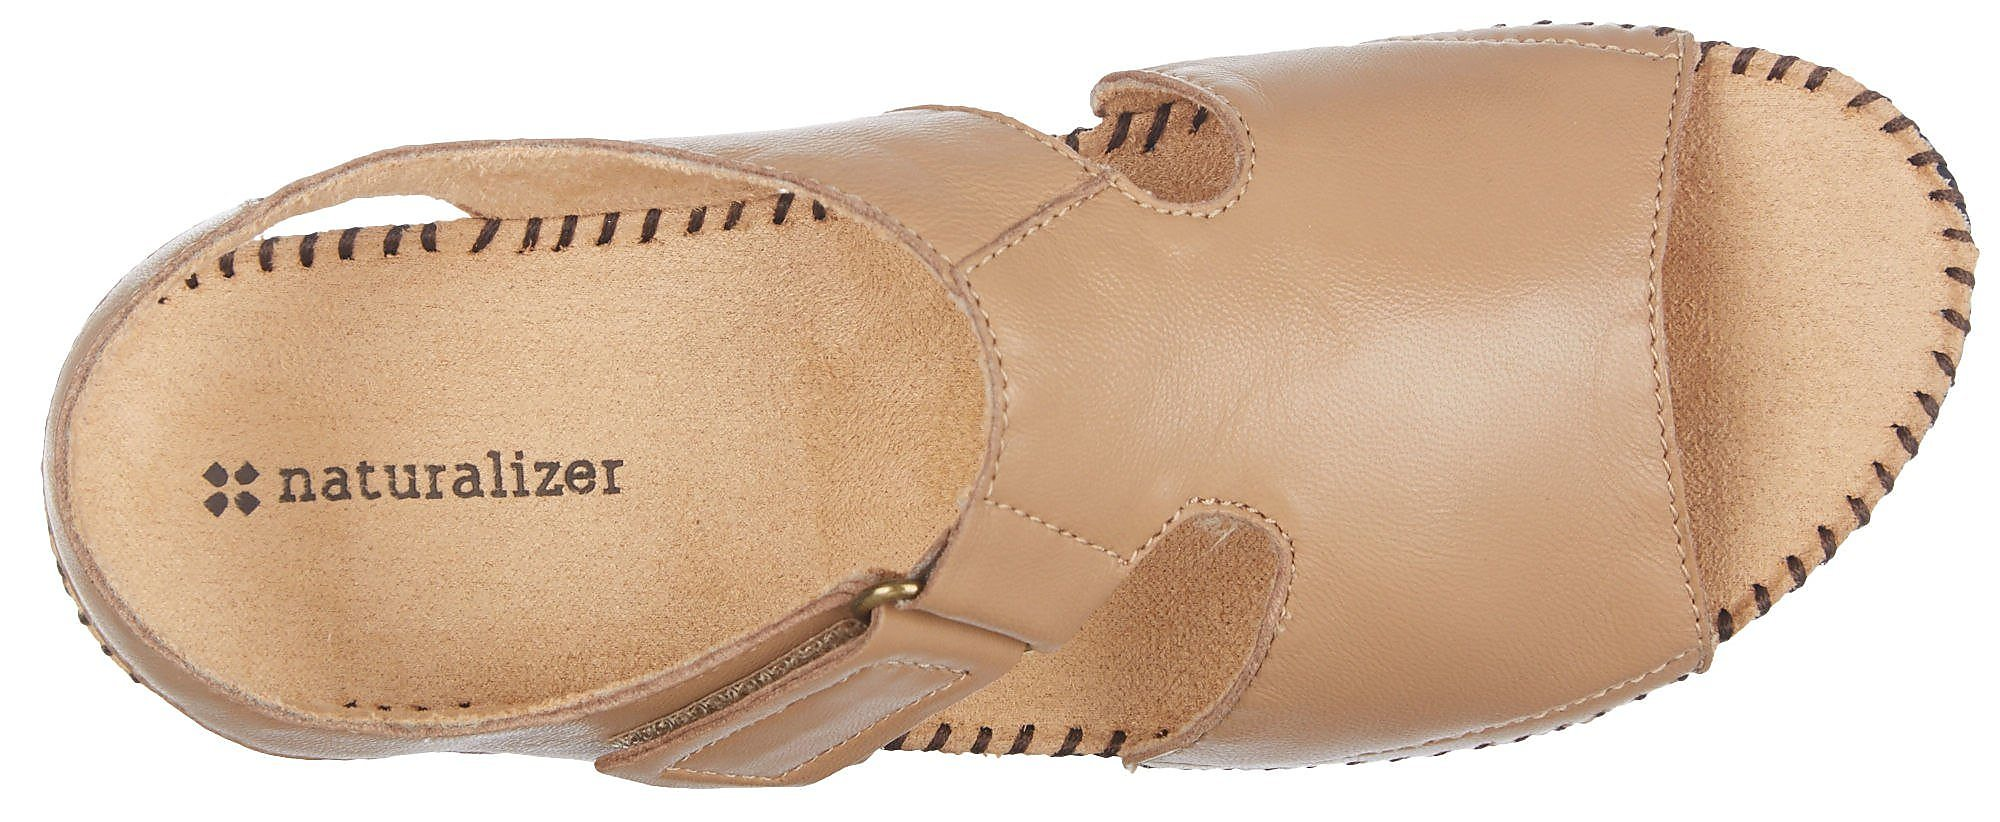 Naturalizer-Womens-Scout-II-Sandals thumbnail 3